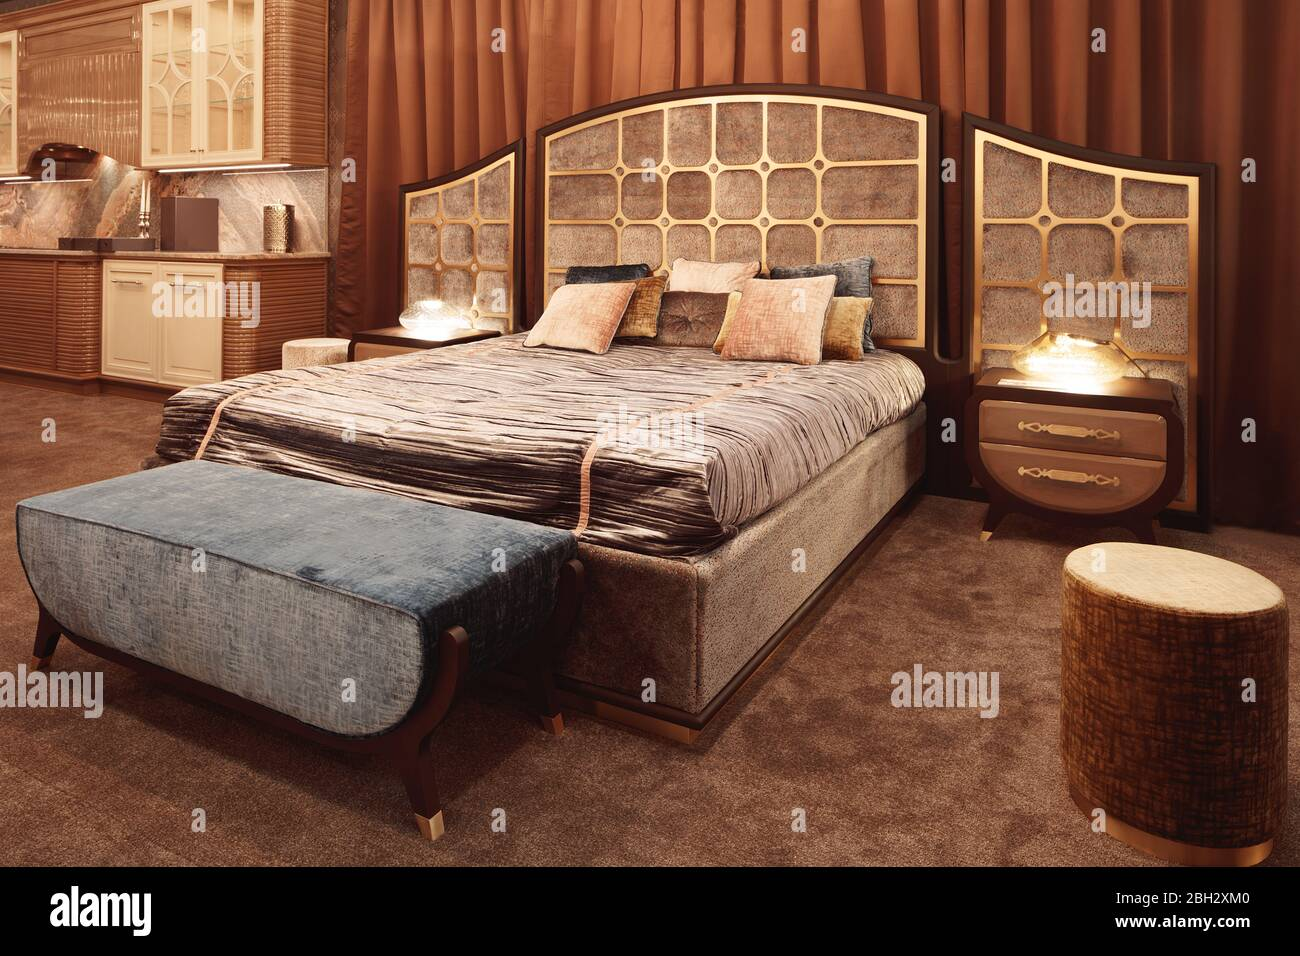 Picture of: Hotel Service Concept Luxurious Bedroom With Bed And Bedside Tables And A Mirror Concept Interior Home Comfort Hotel Stock Photo Alamy